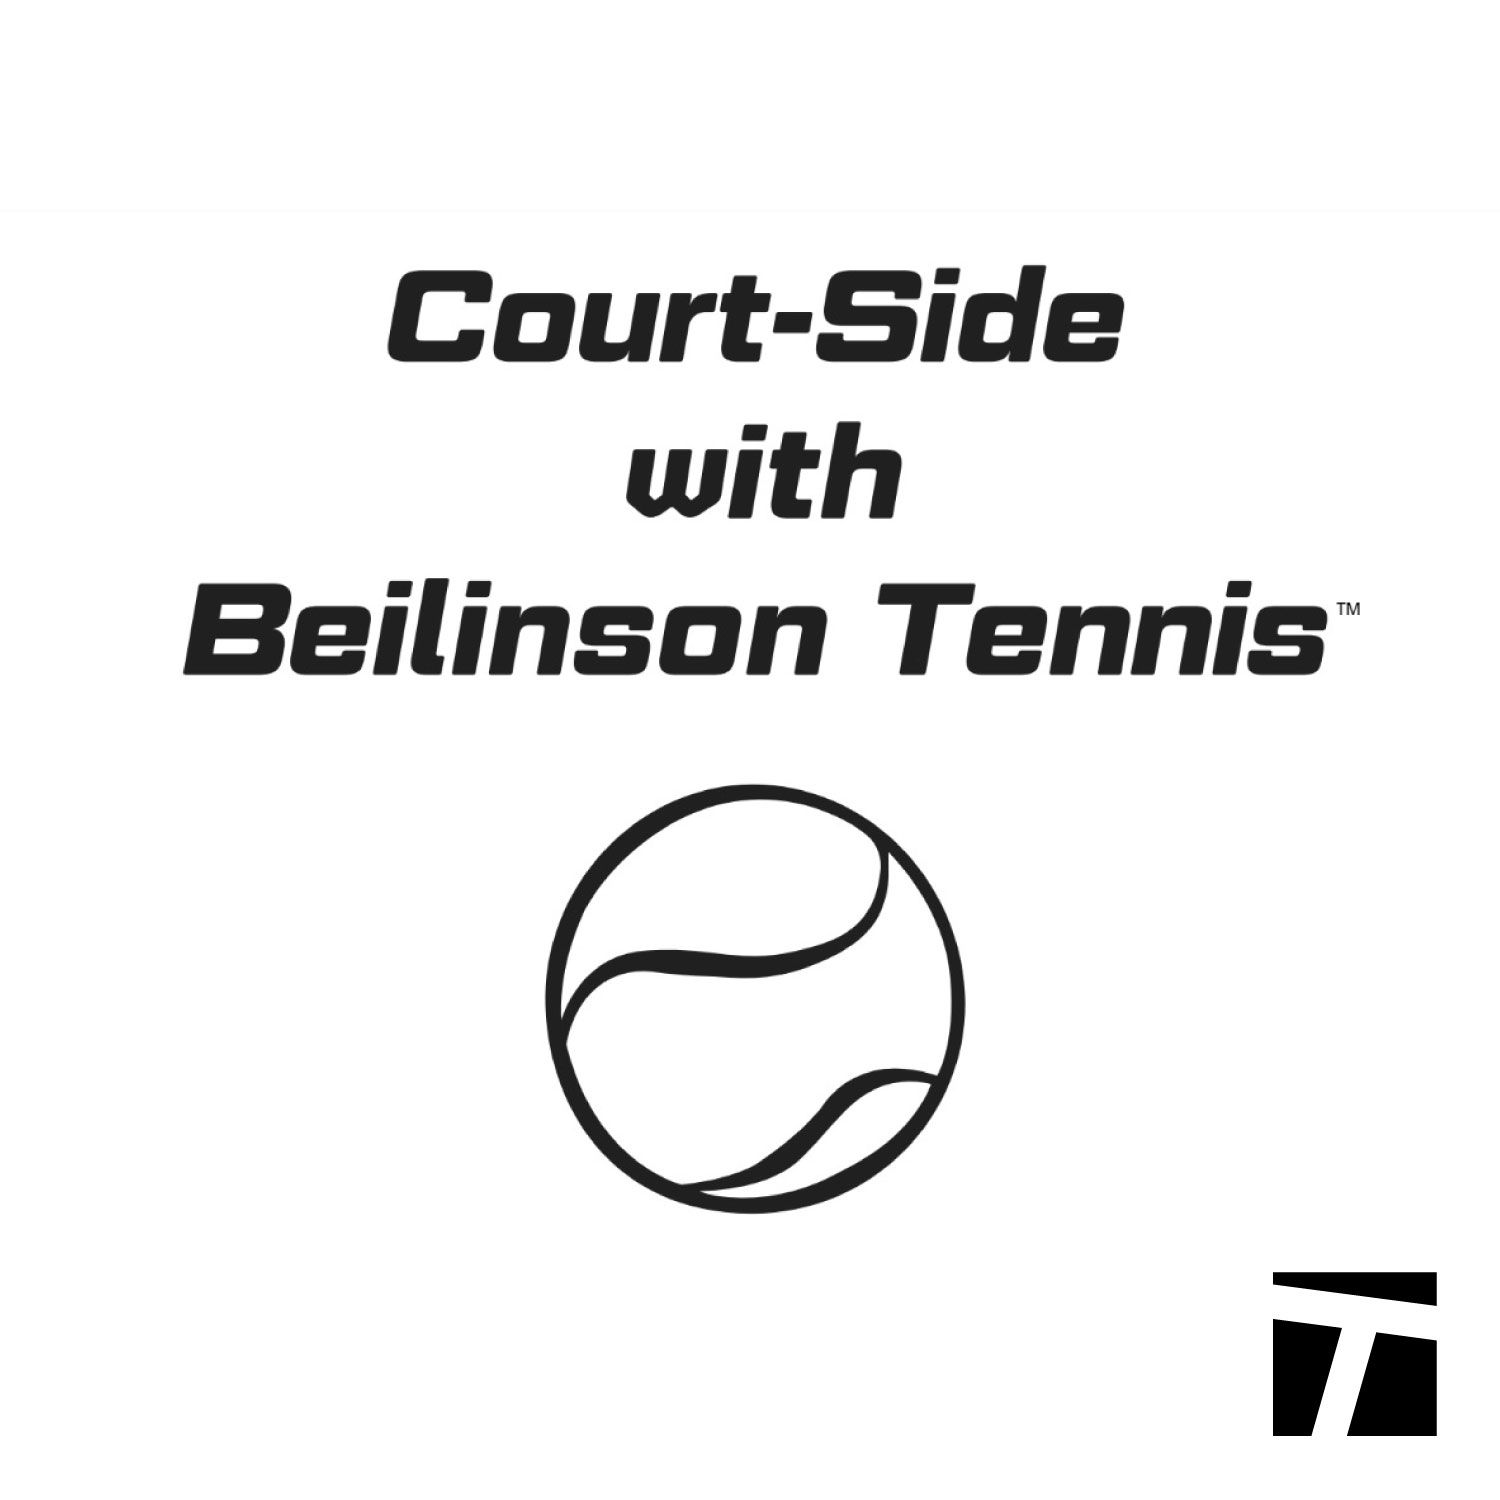 Court-Side with Beilinson Tennis